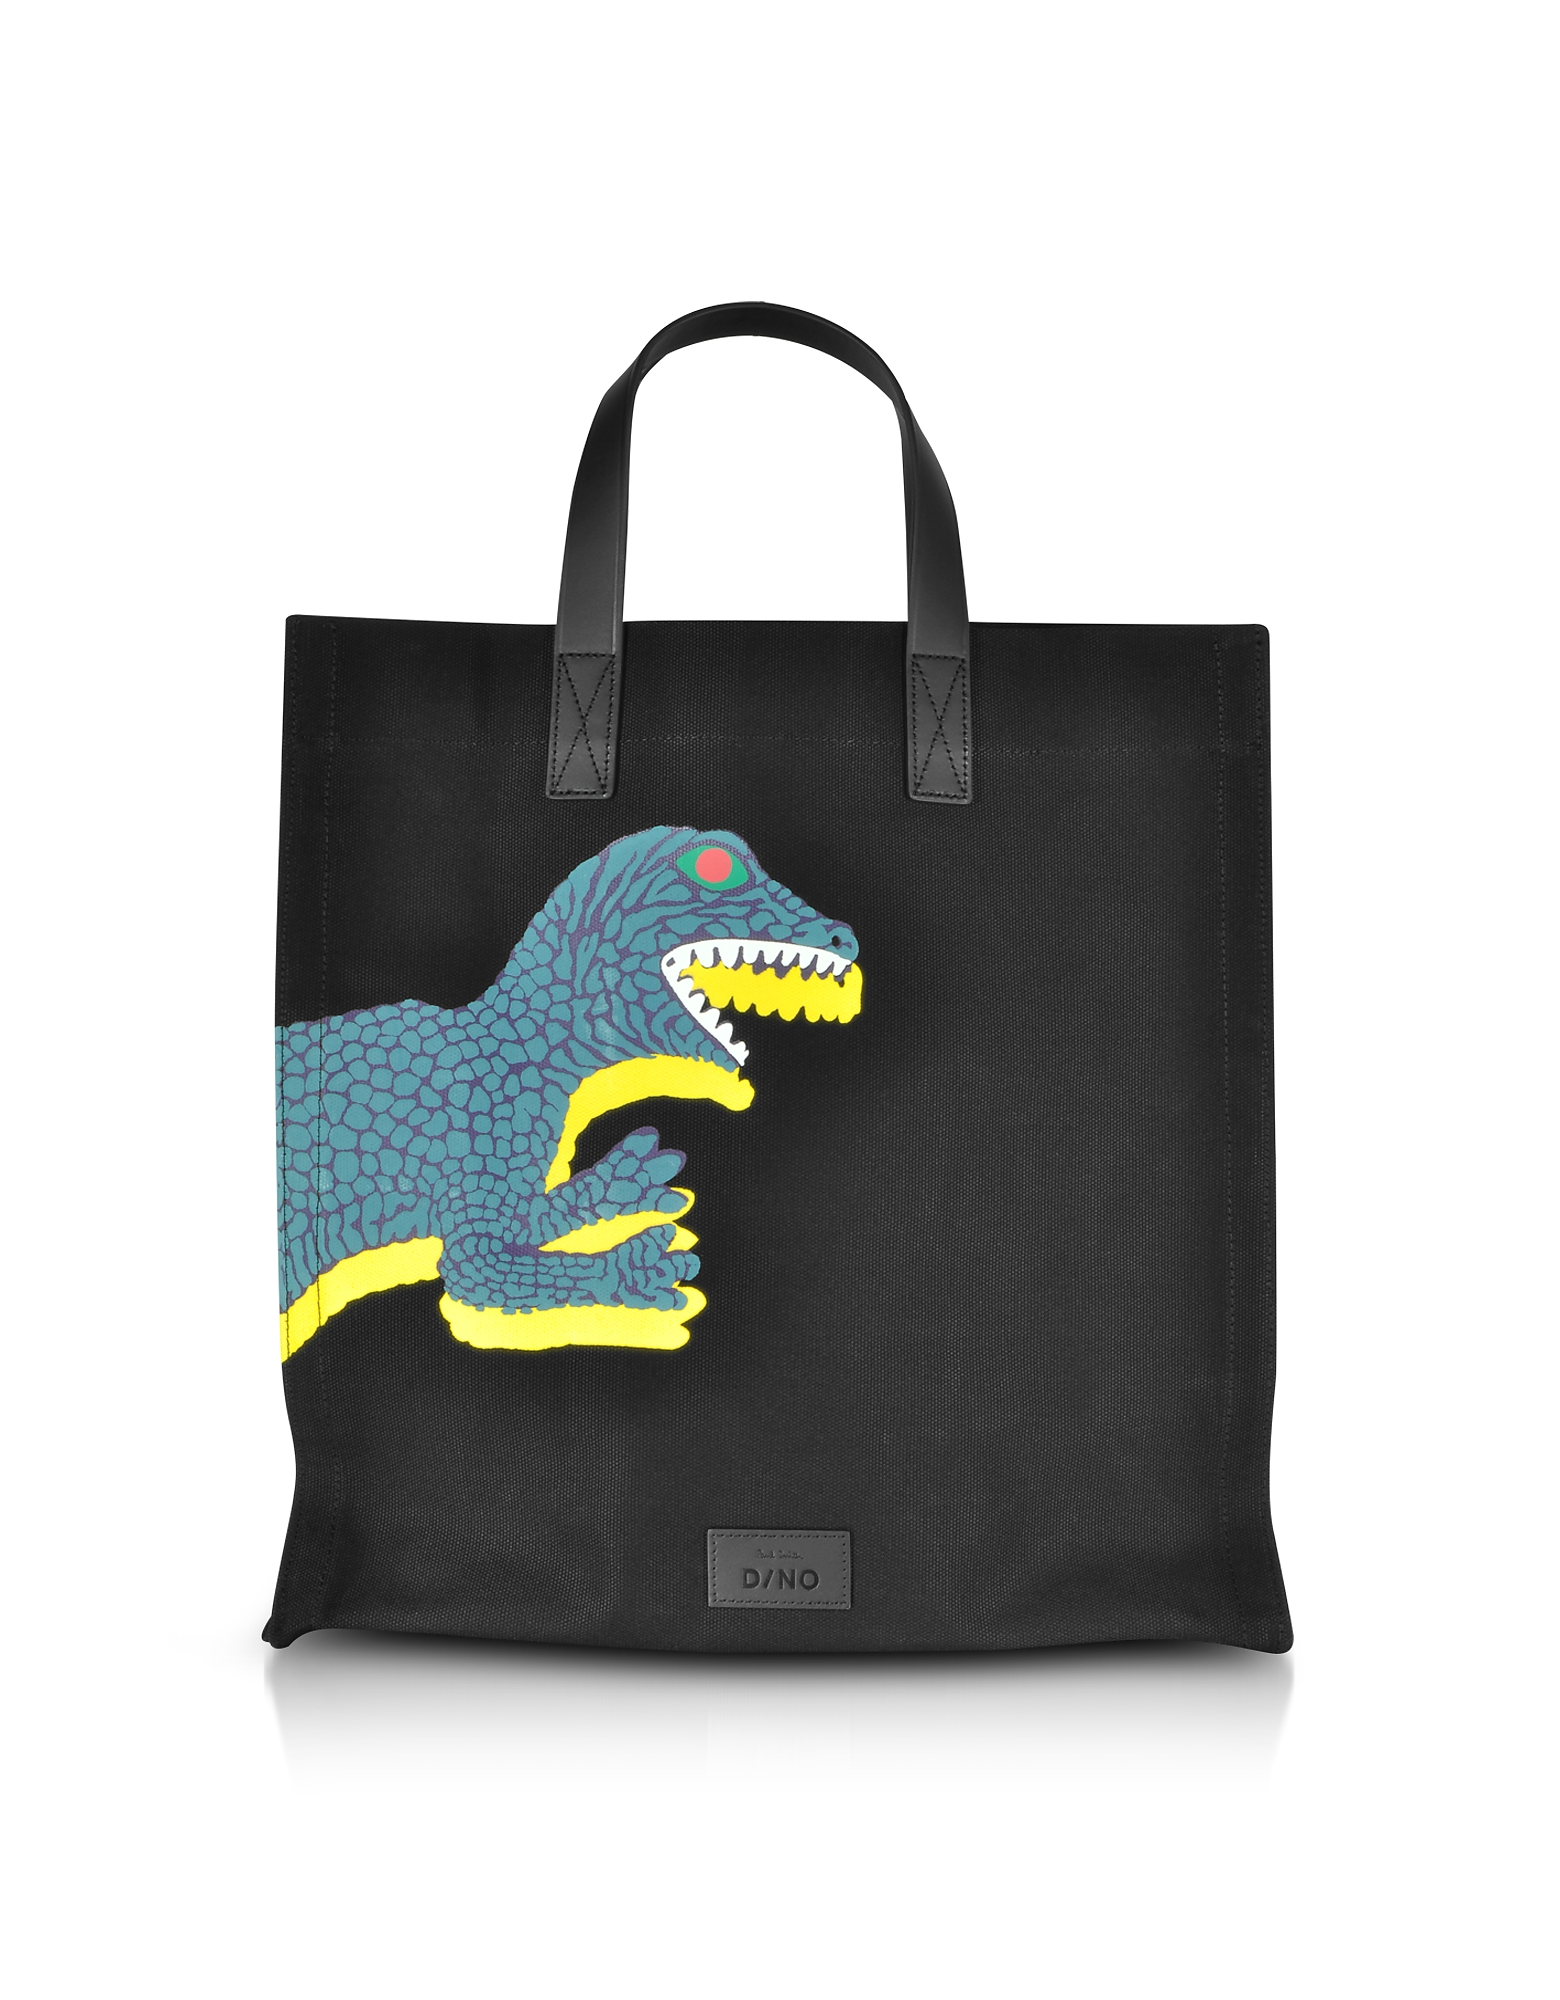 Image of Paul Smith Designer Men's Bags, Black Dino Printed Canvas Tote Bag with Leather Handles